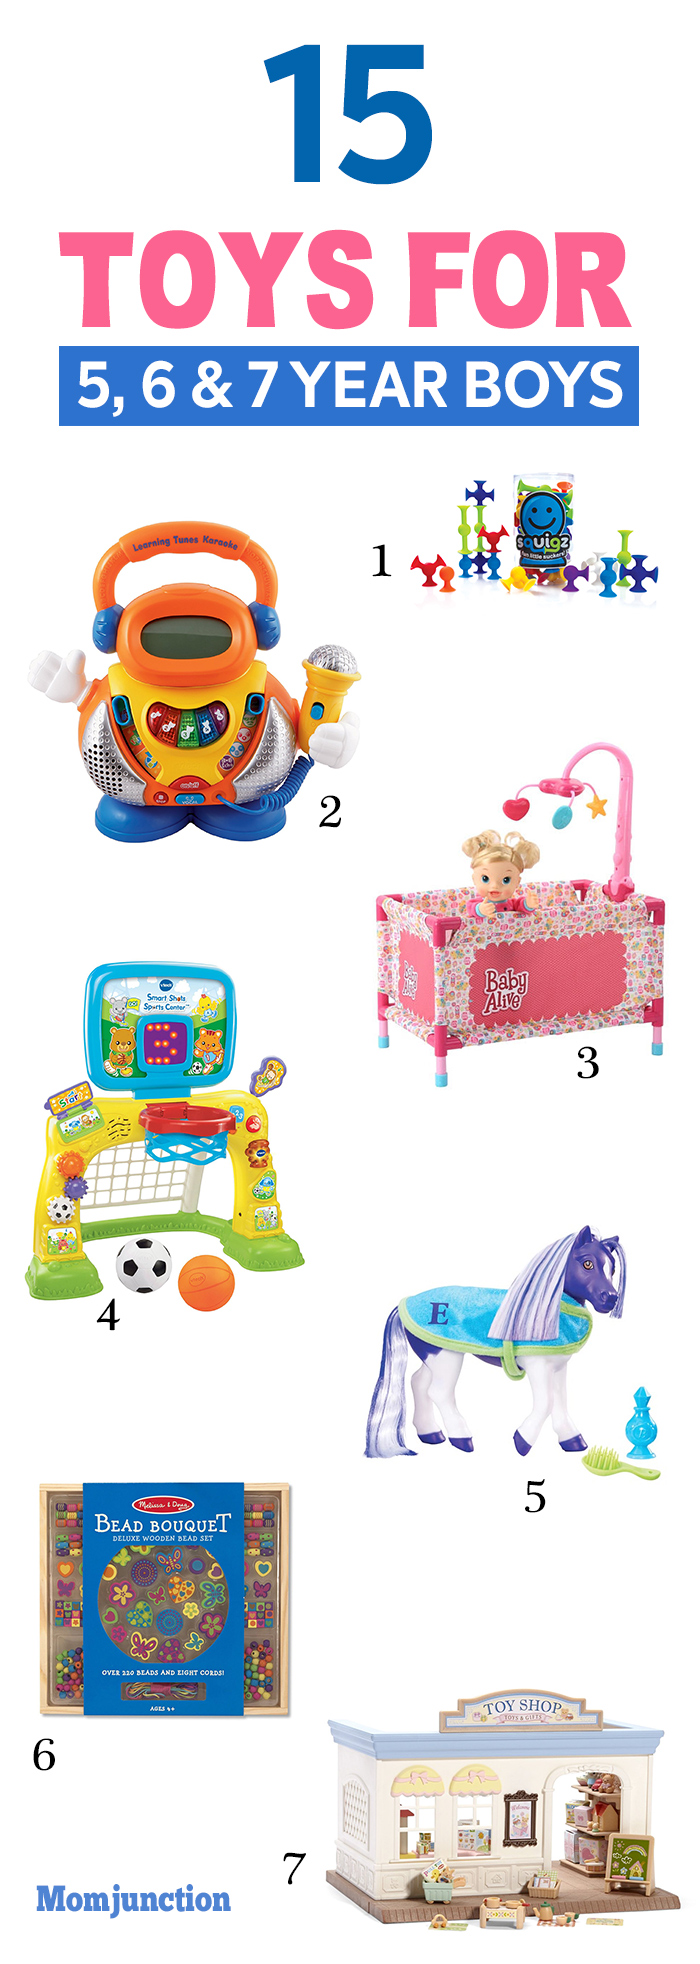 15 Best Toys For 5, 6 And 7-Year-Old Boys